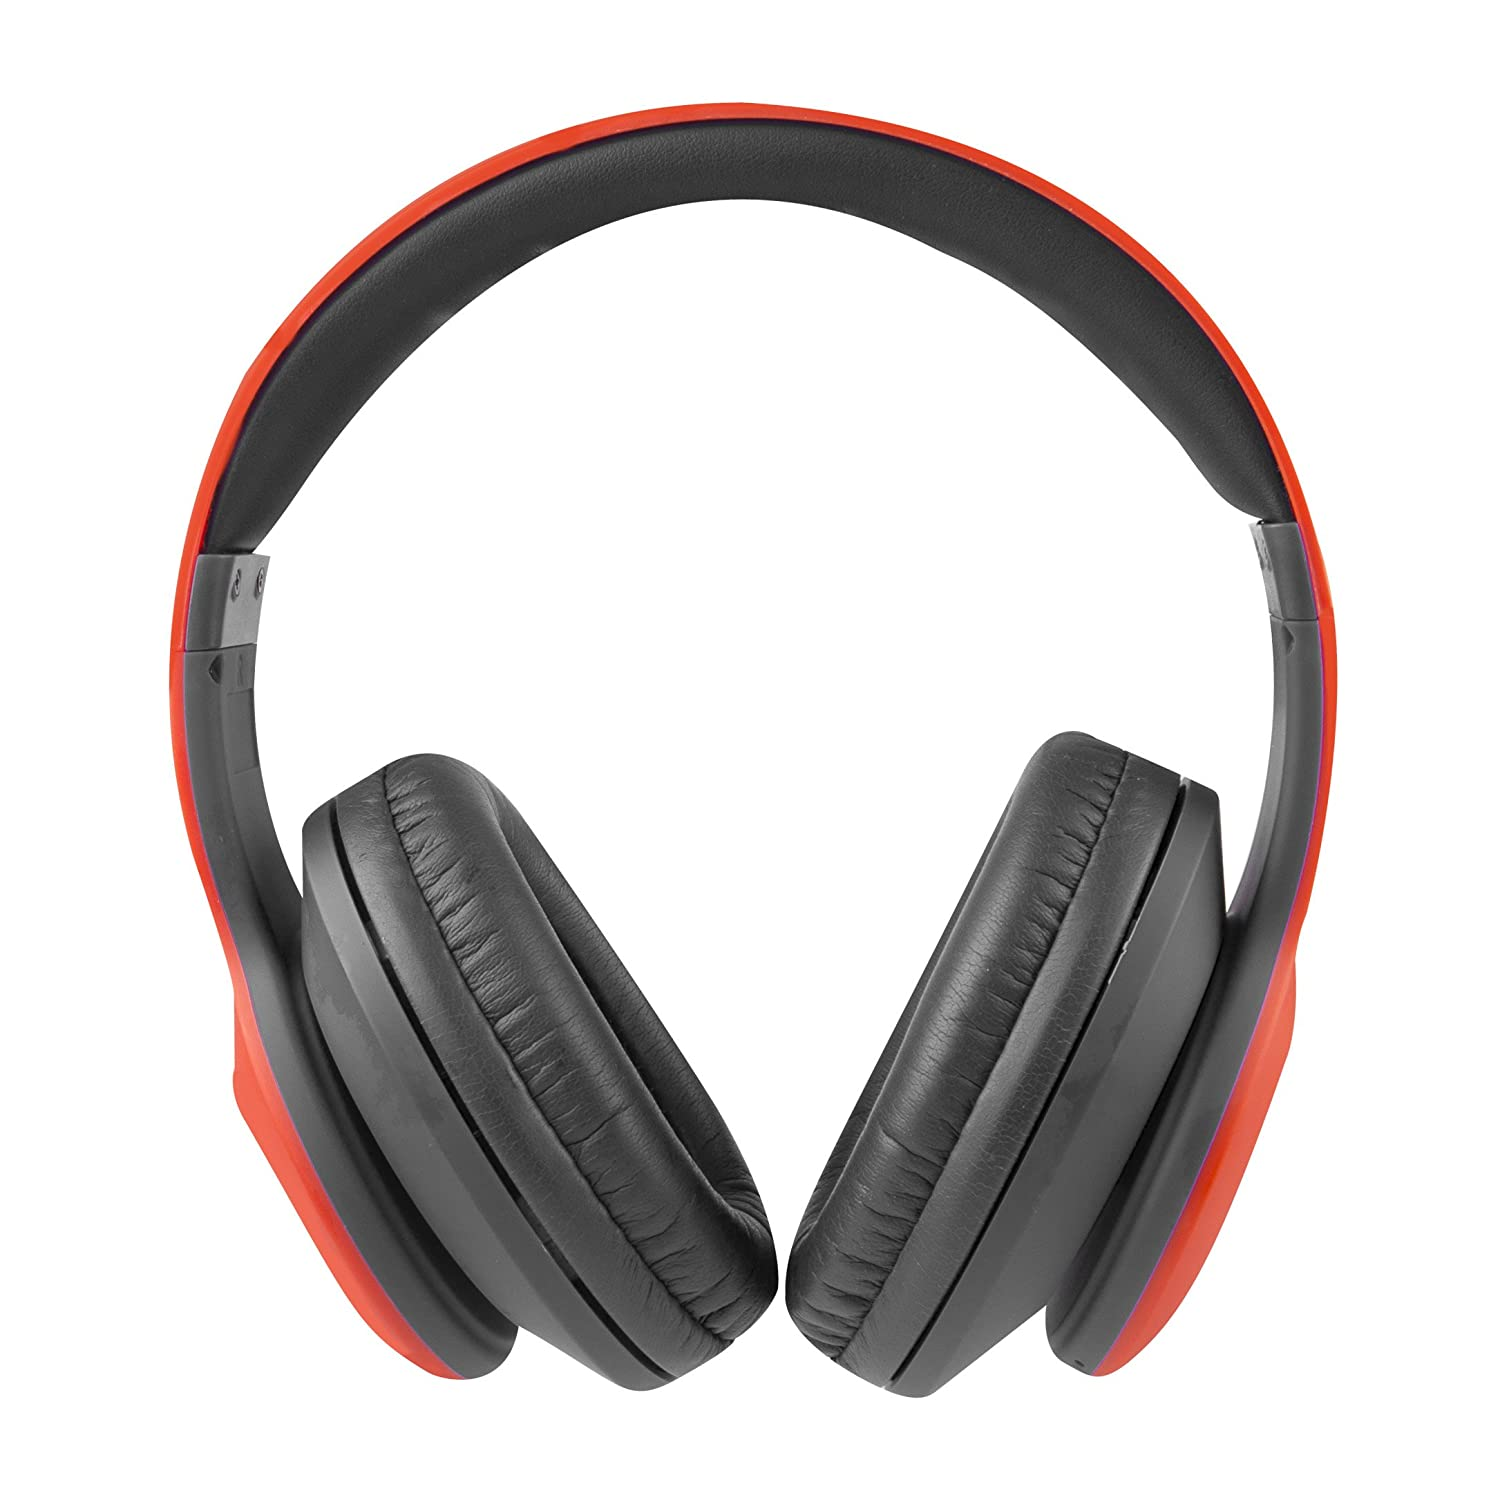 Altec Lansing MZX300-RED Wireless Over Ear Bluetooth Headphones with Microphone, Red